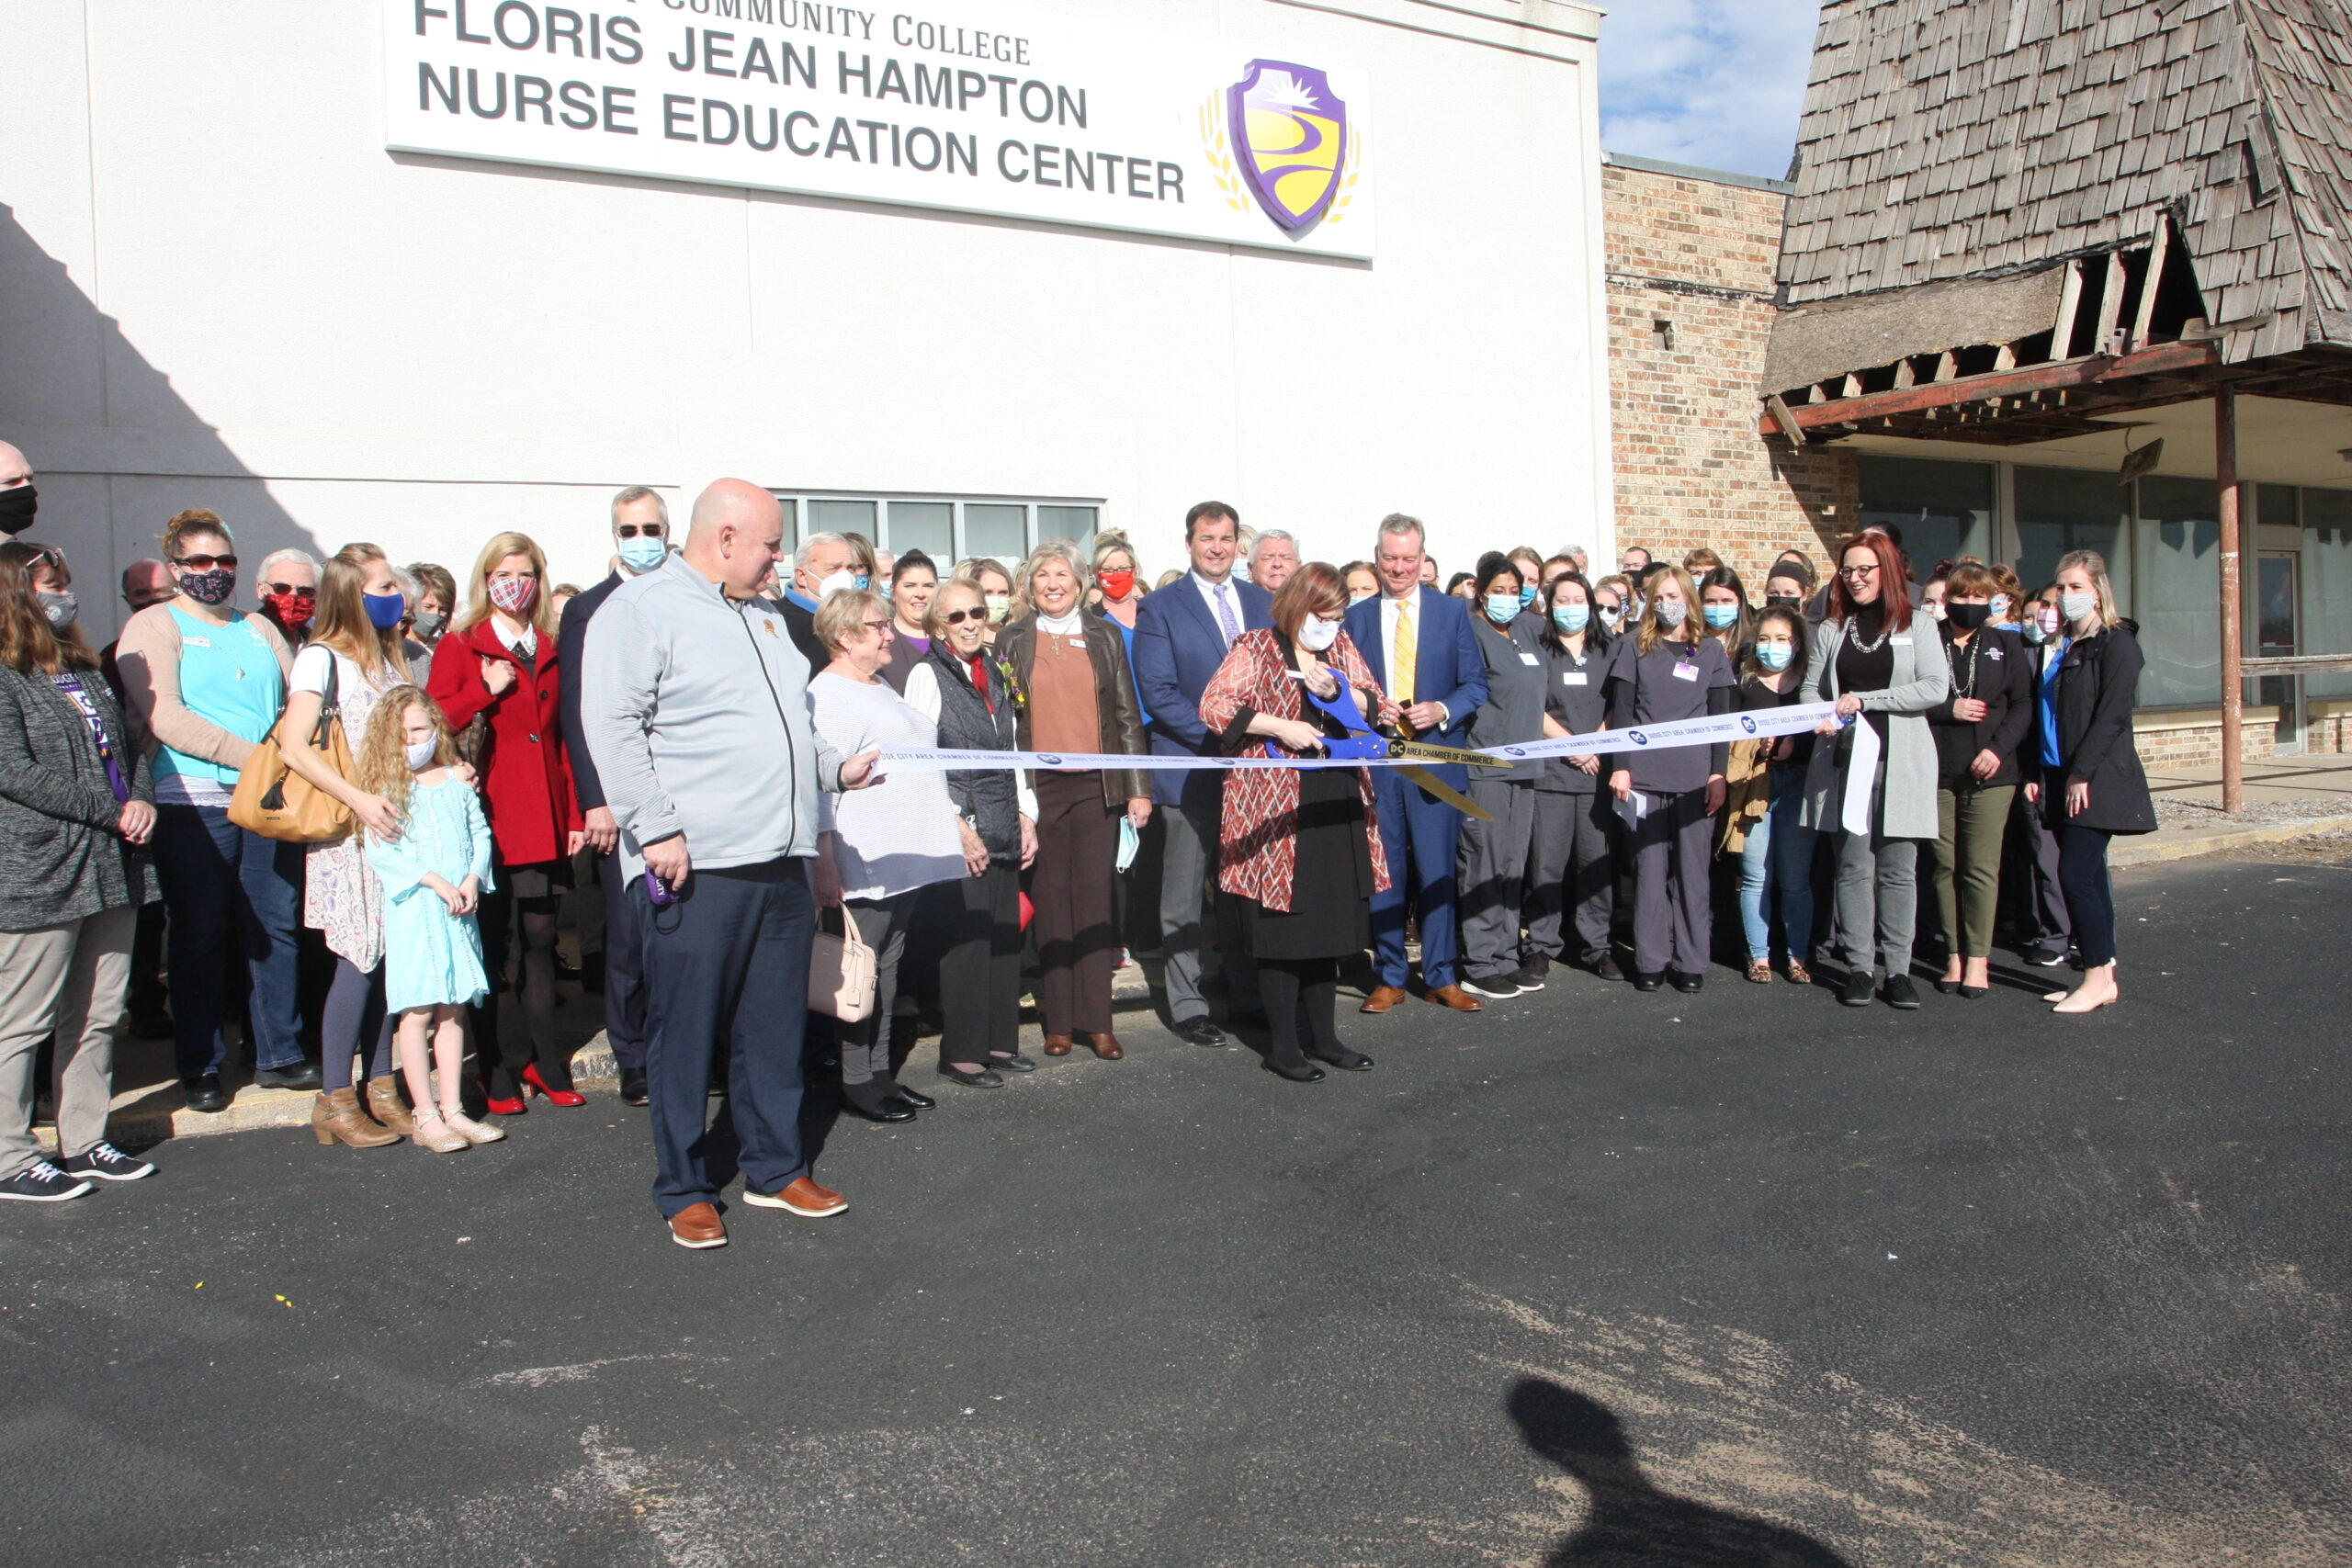 A group of college personnel, family and community members gather for a ribbon cutting outside of the Floris Jean Hampton Nurse Education Center